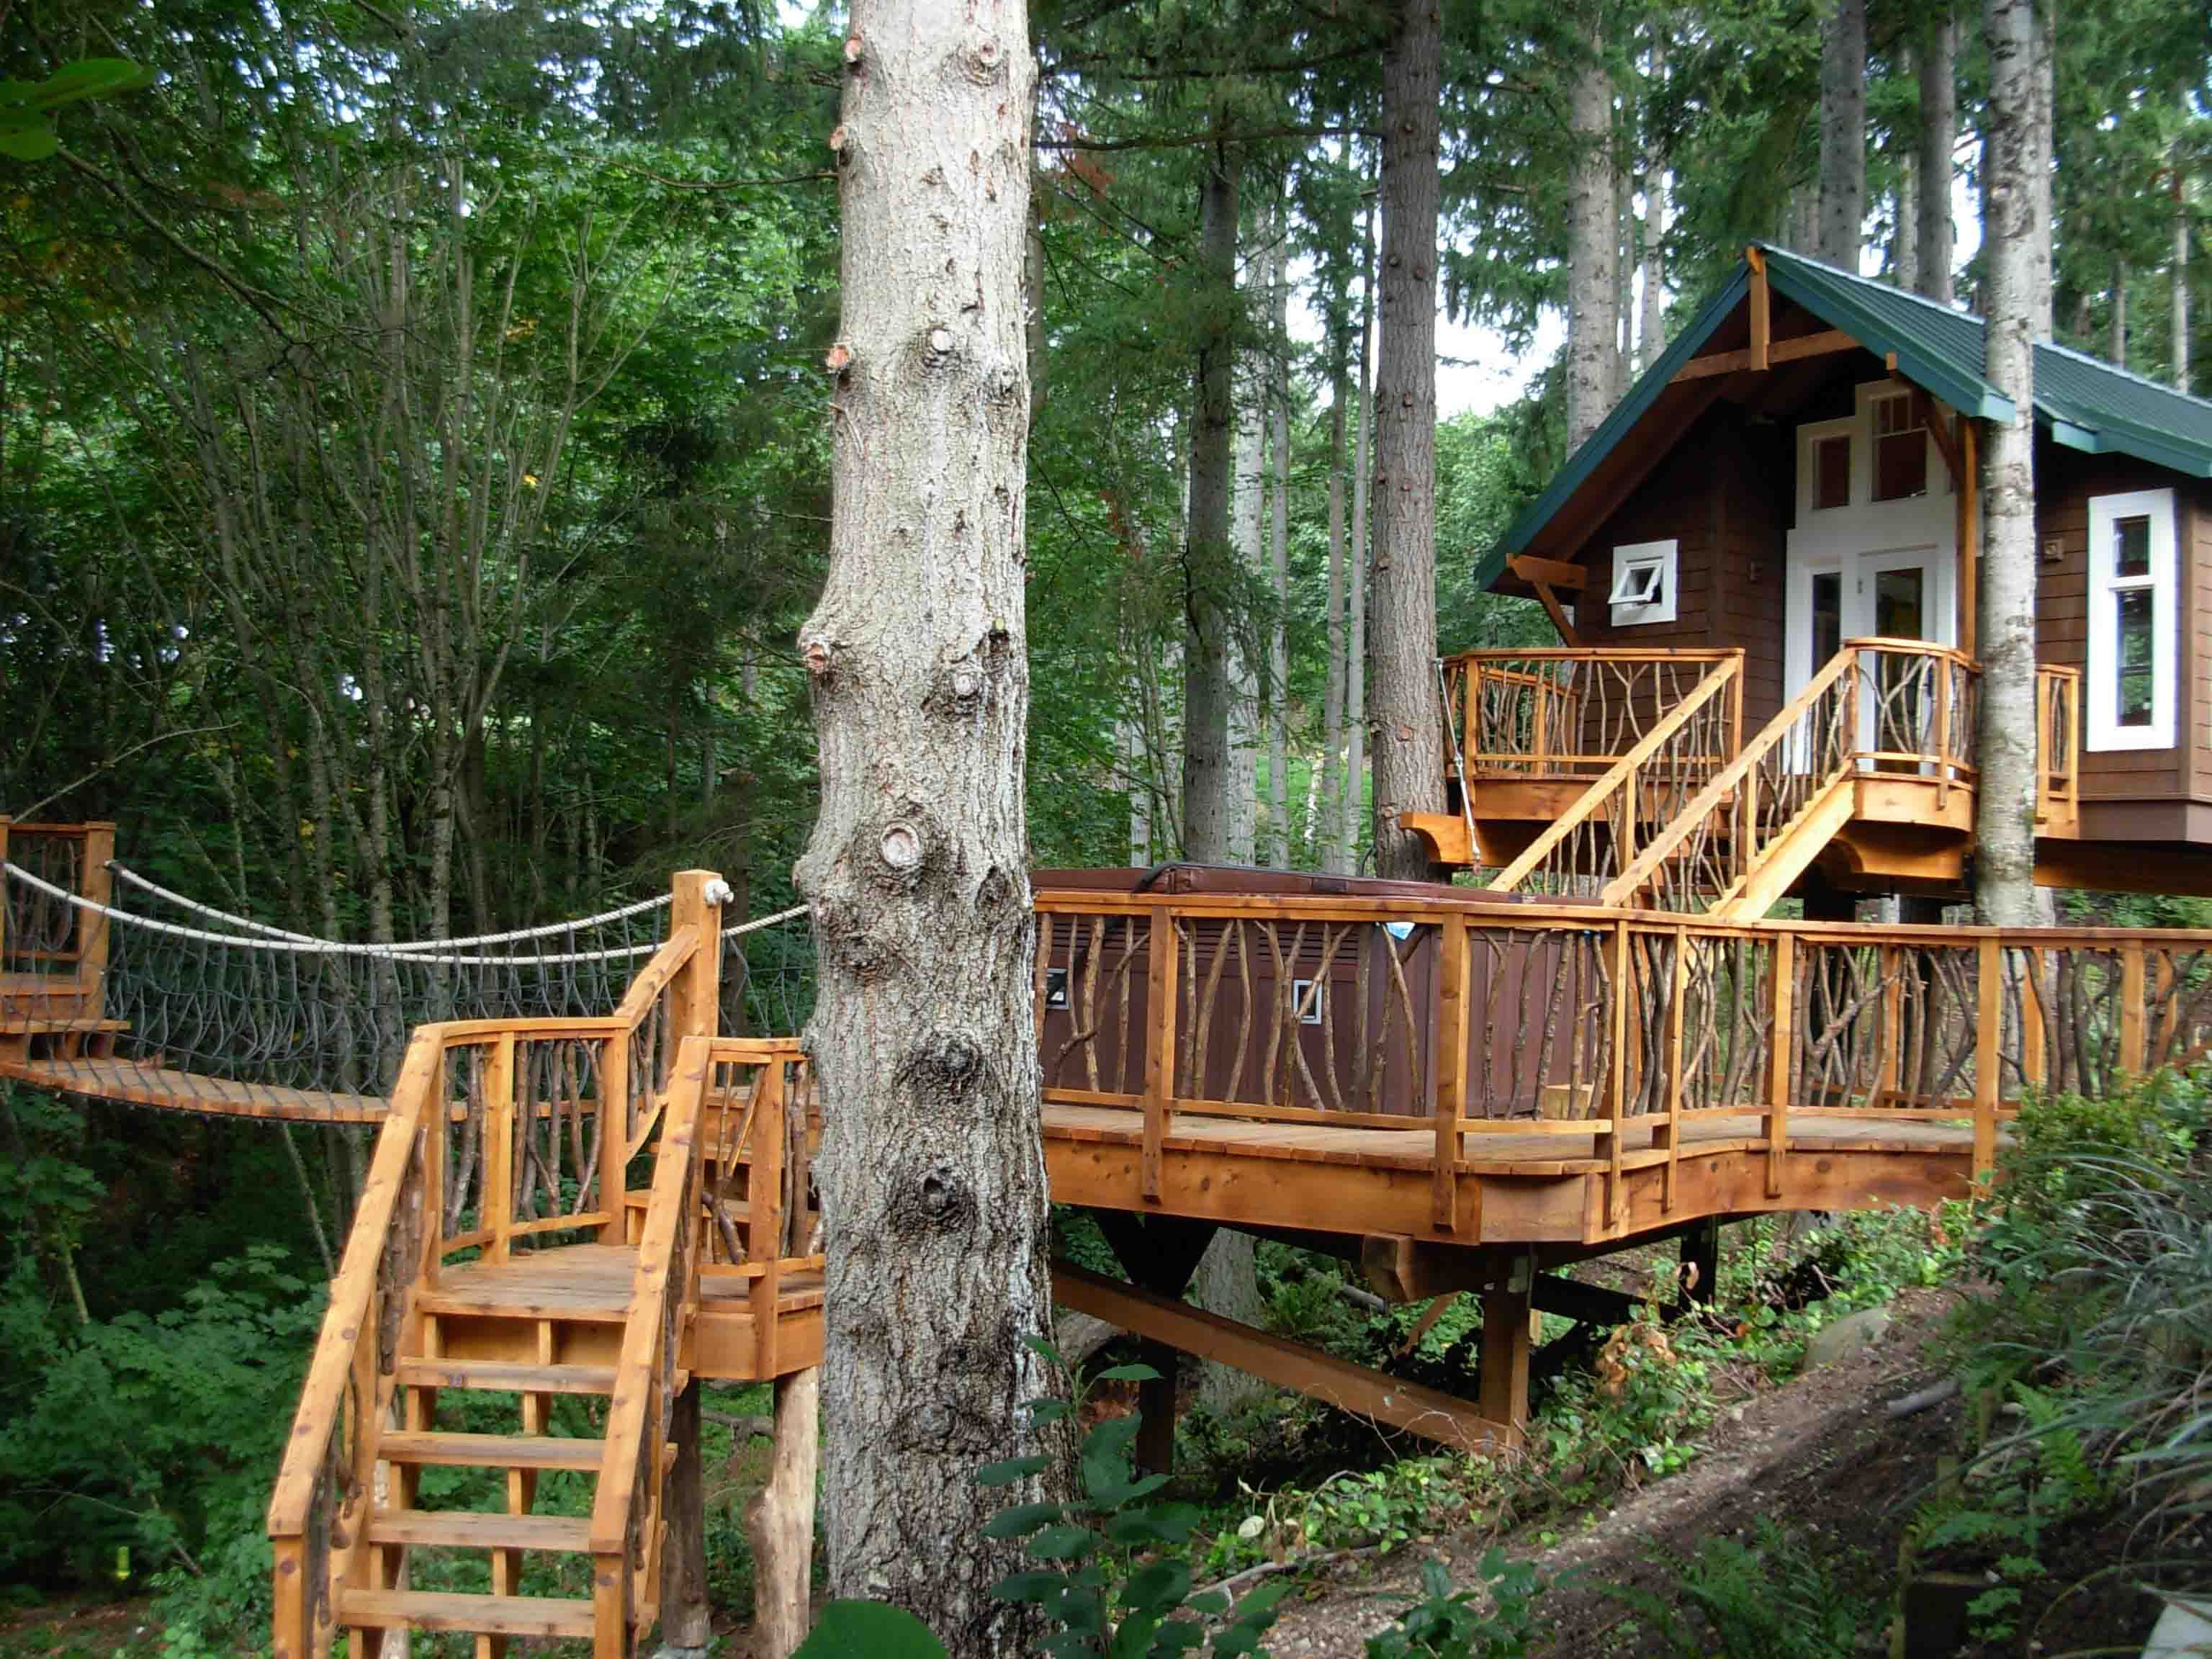 18 amazing tree house designs - Cool Kids Tree House